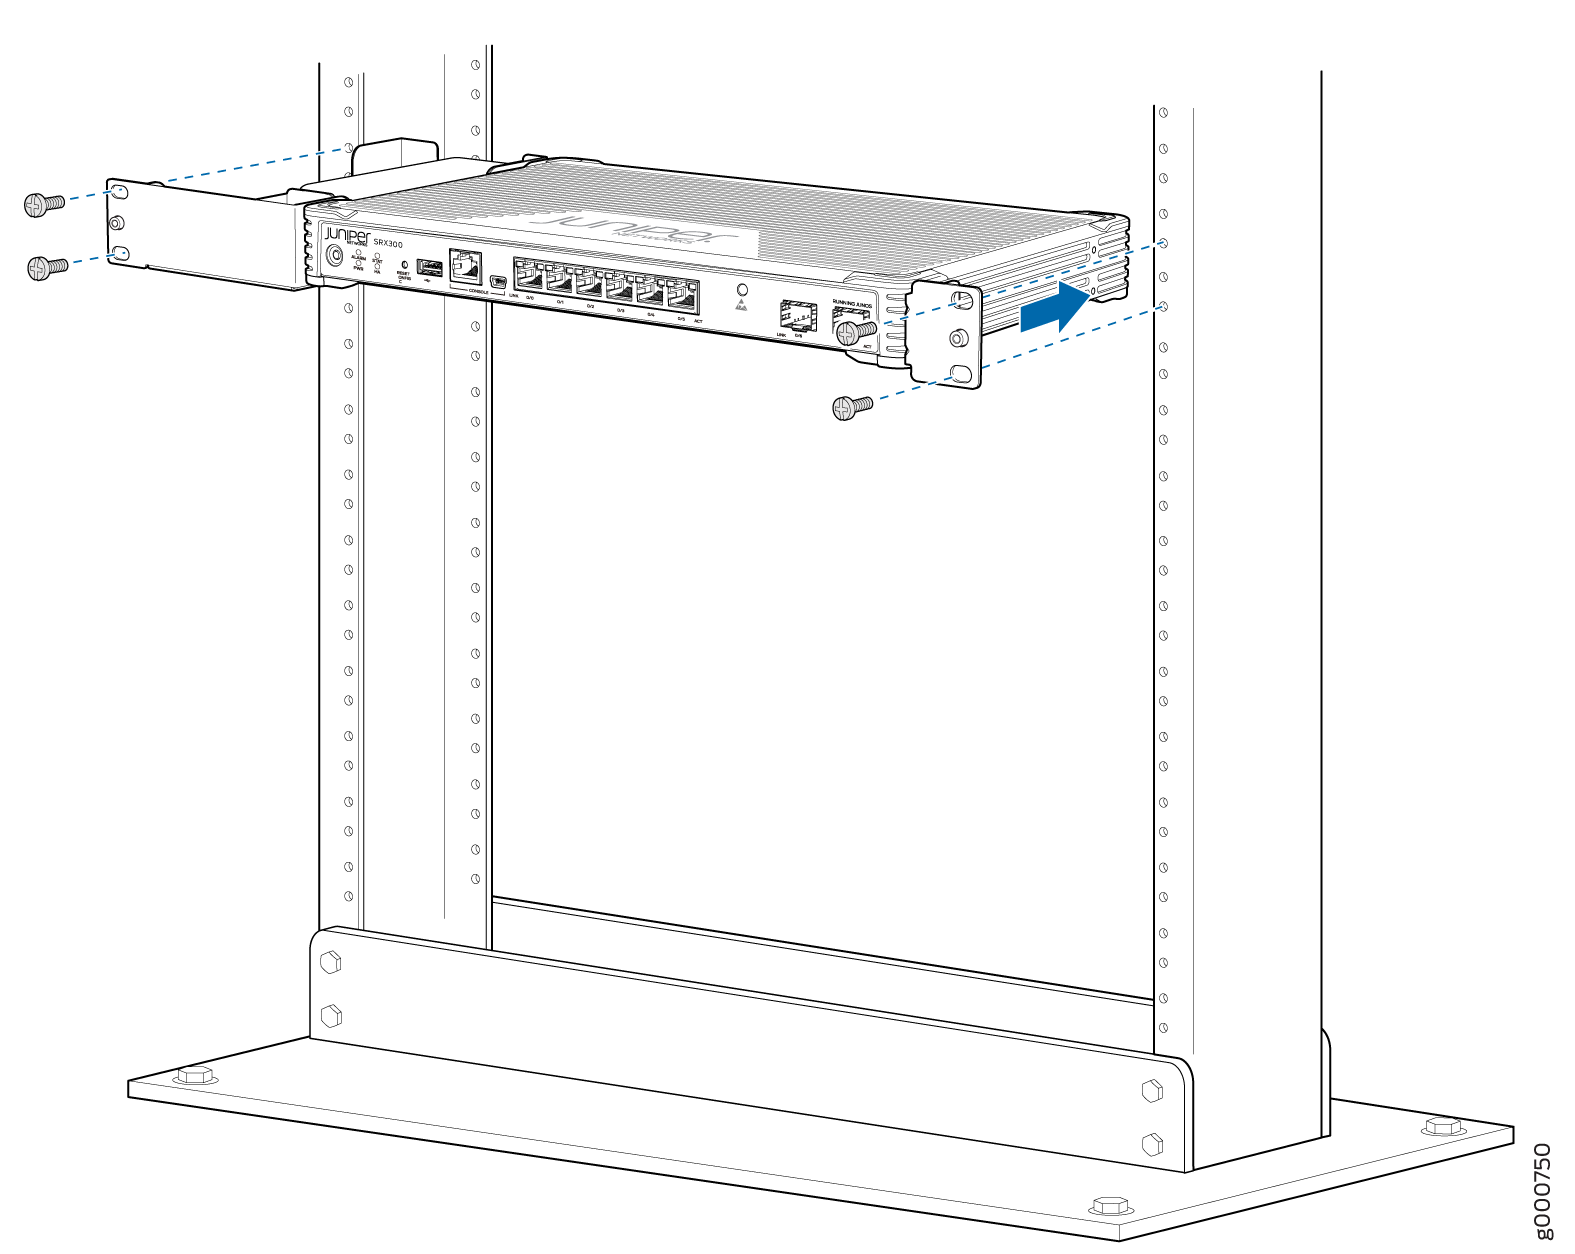 SRX300 Services Gateway Rack Installation — Positioning the SRX300 Services Gateway in a Rack